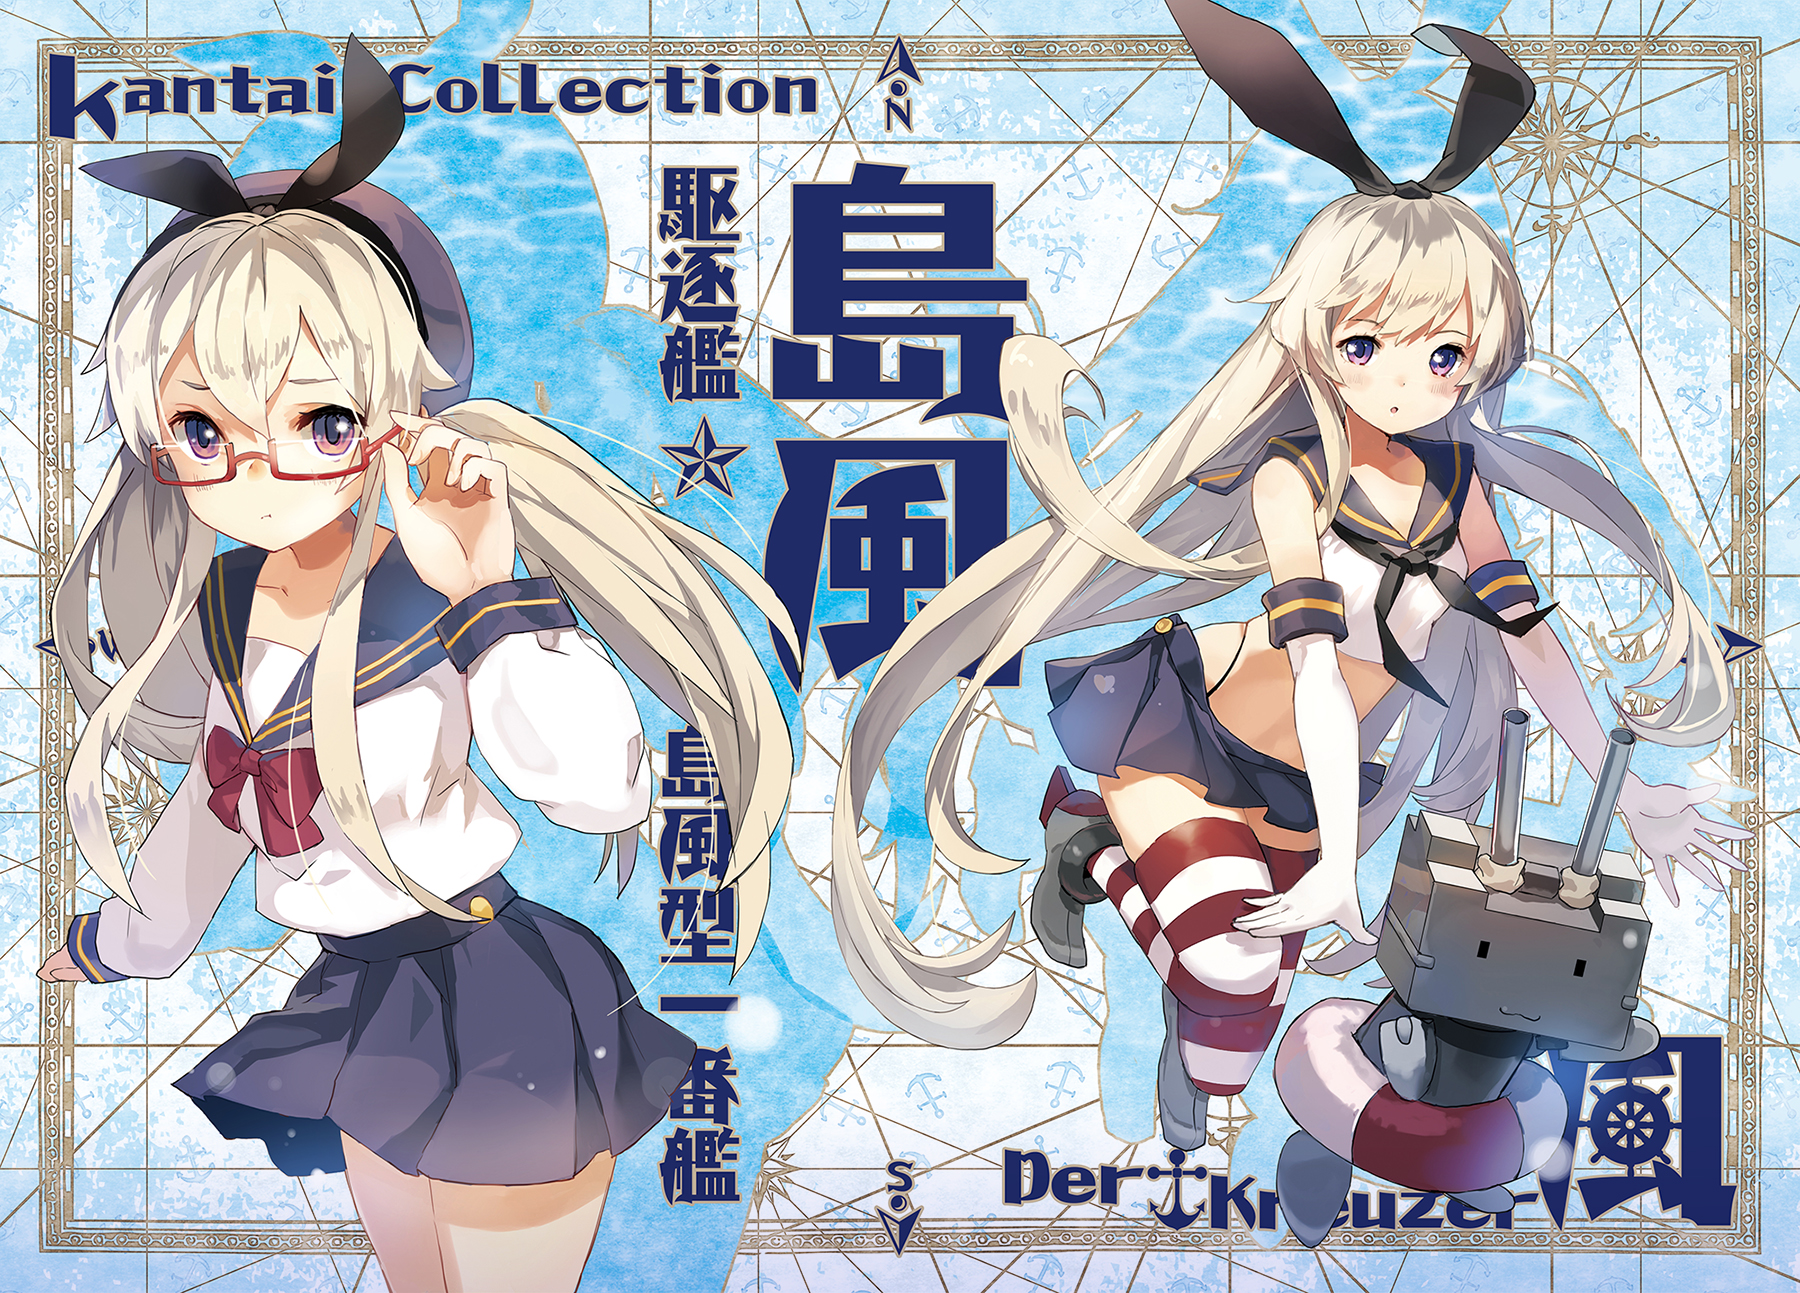 anime_wallpaper_Kantai_Collection_shimakaze_164904-41955747.jpg